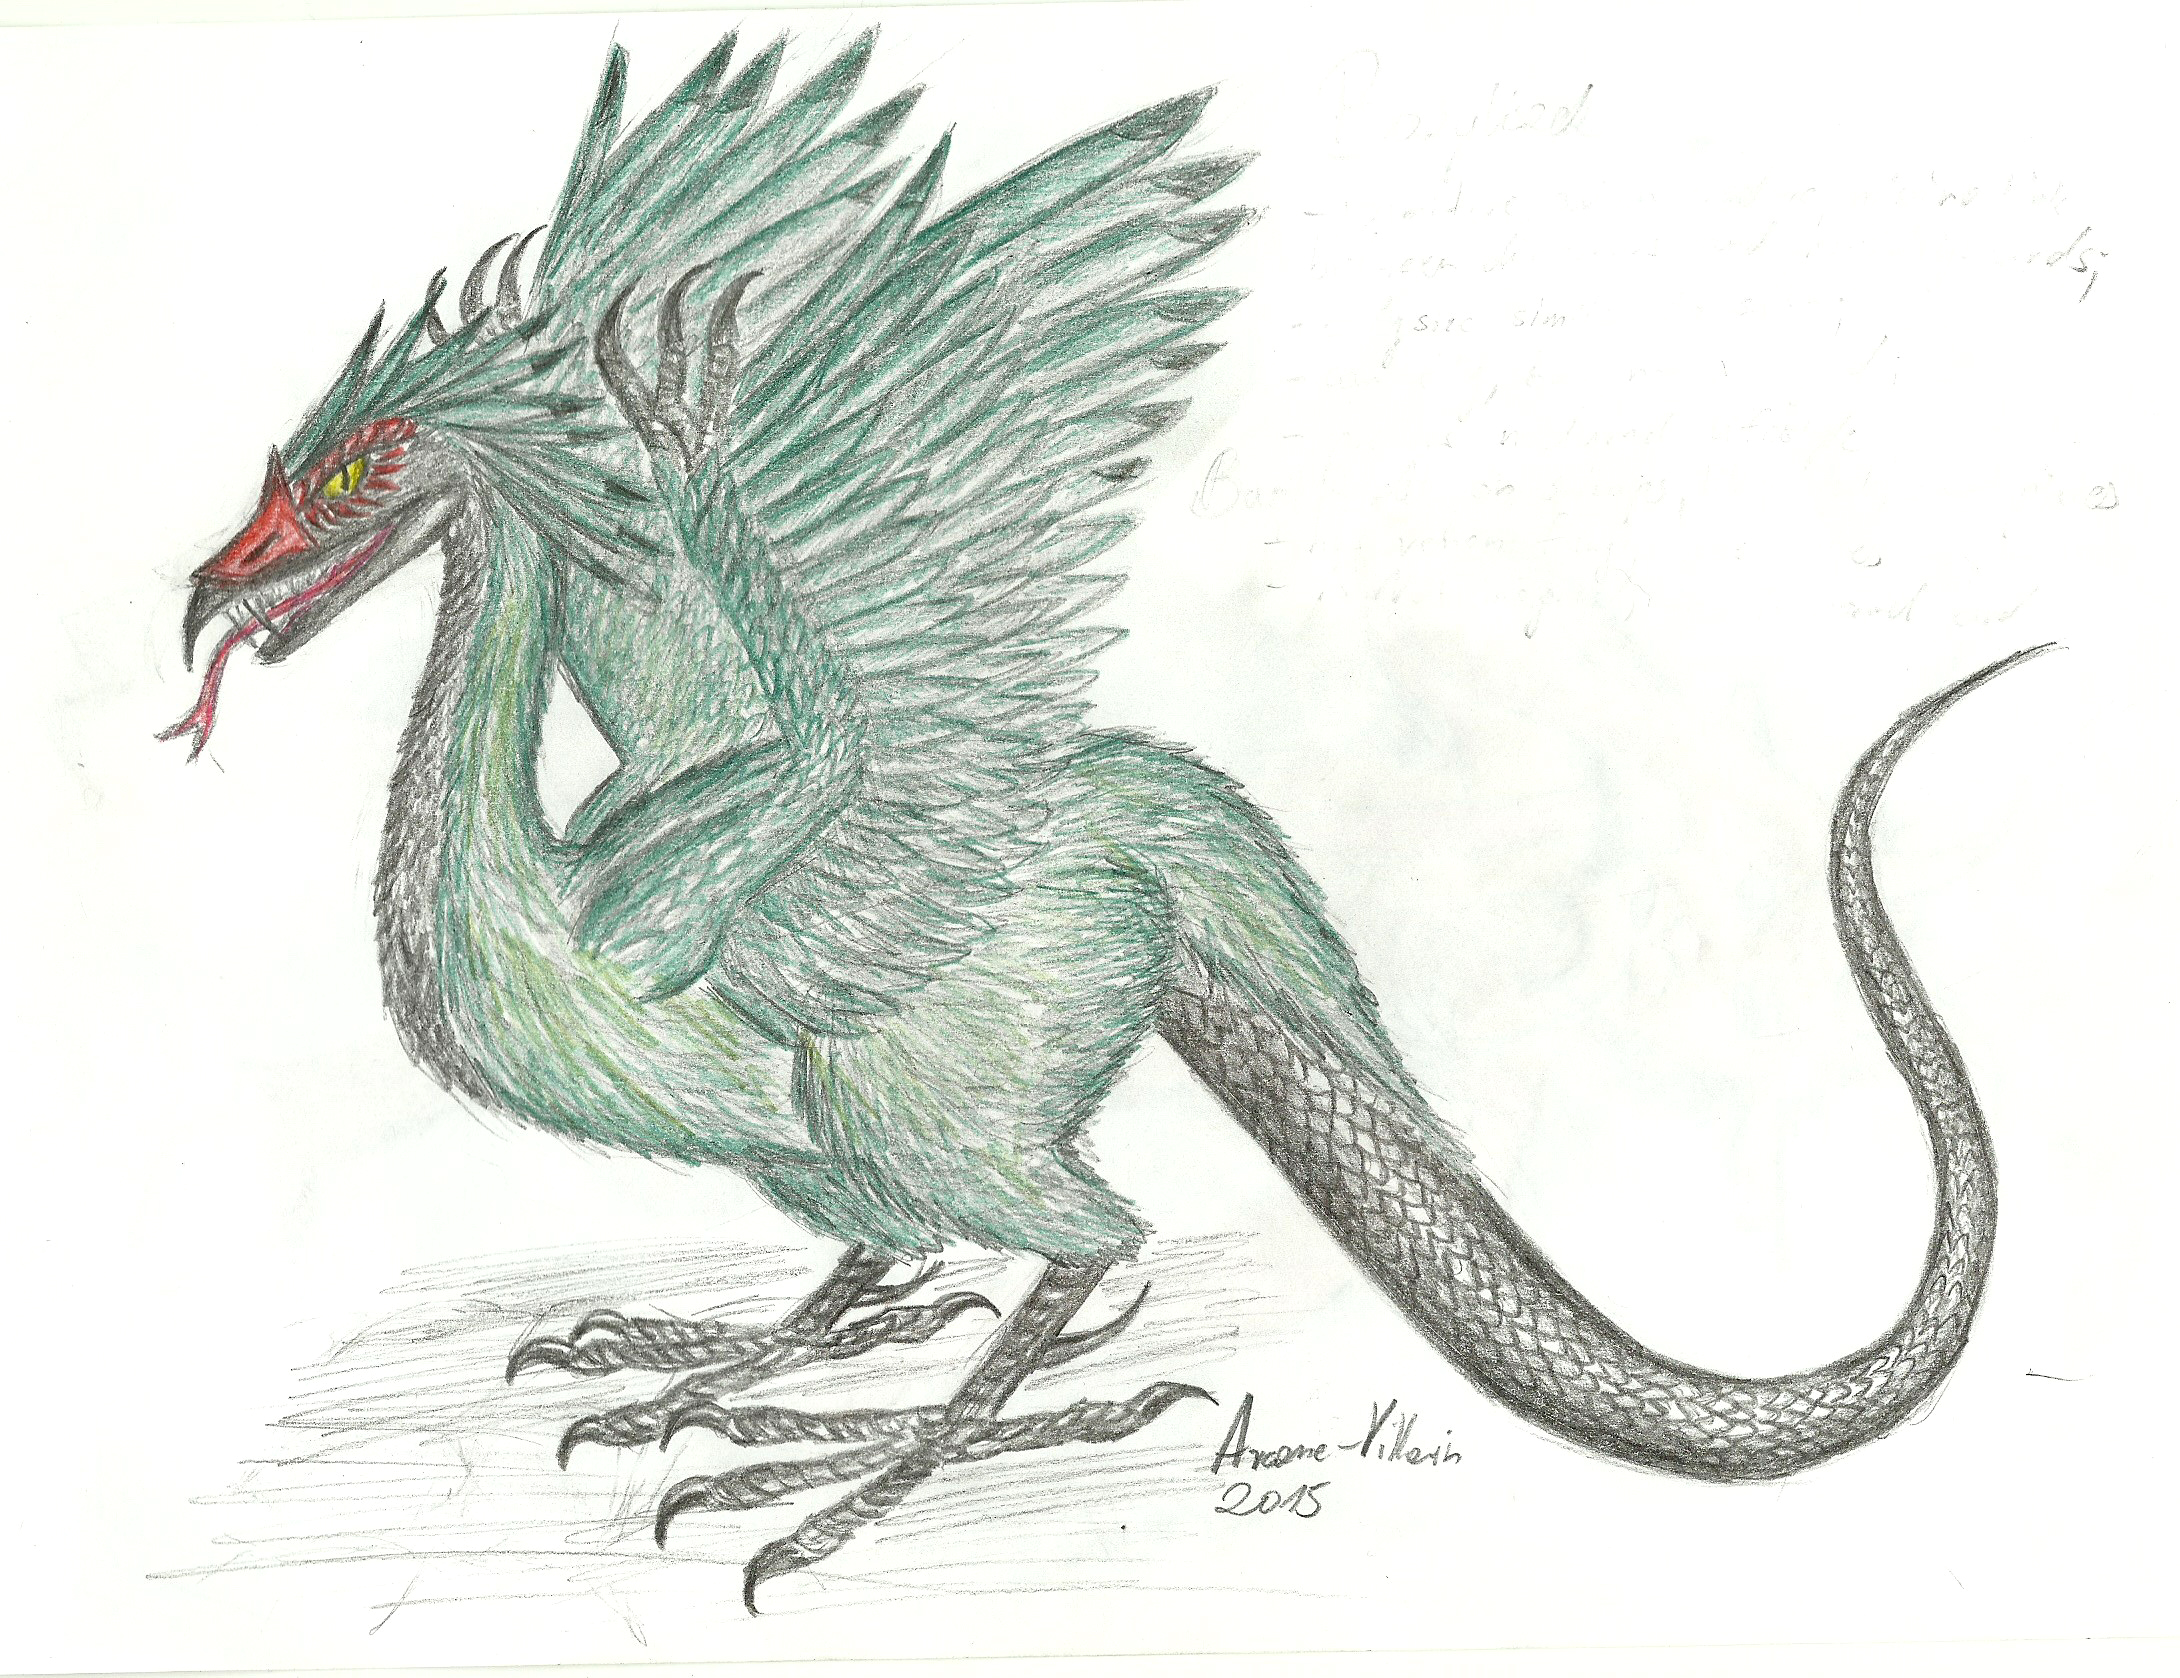 Basilisk Drawings Pictures to Pin on Pinterest - PinsDaddy